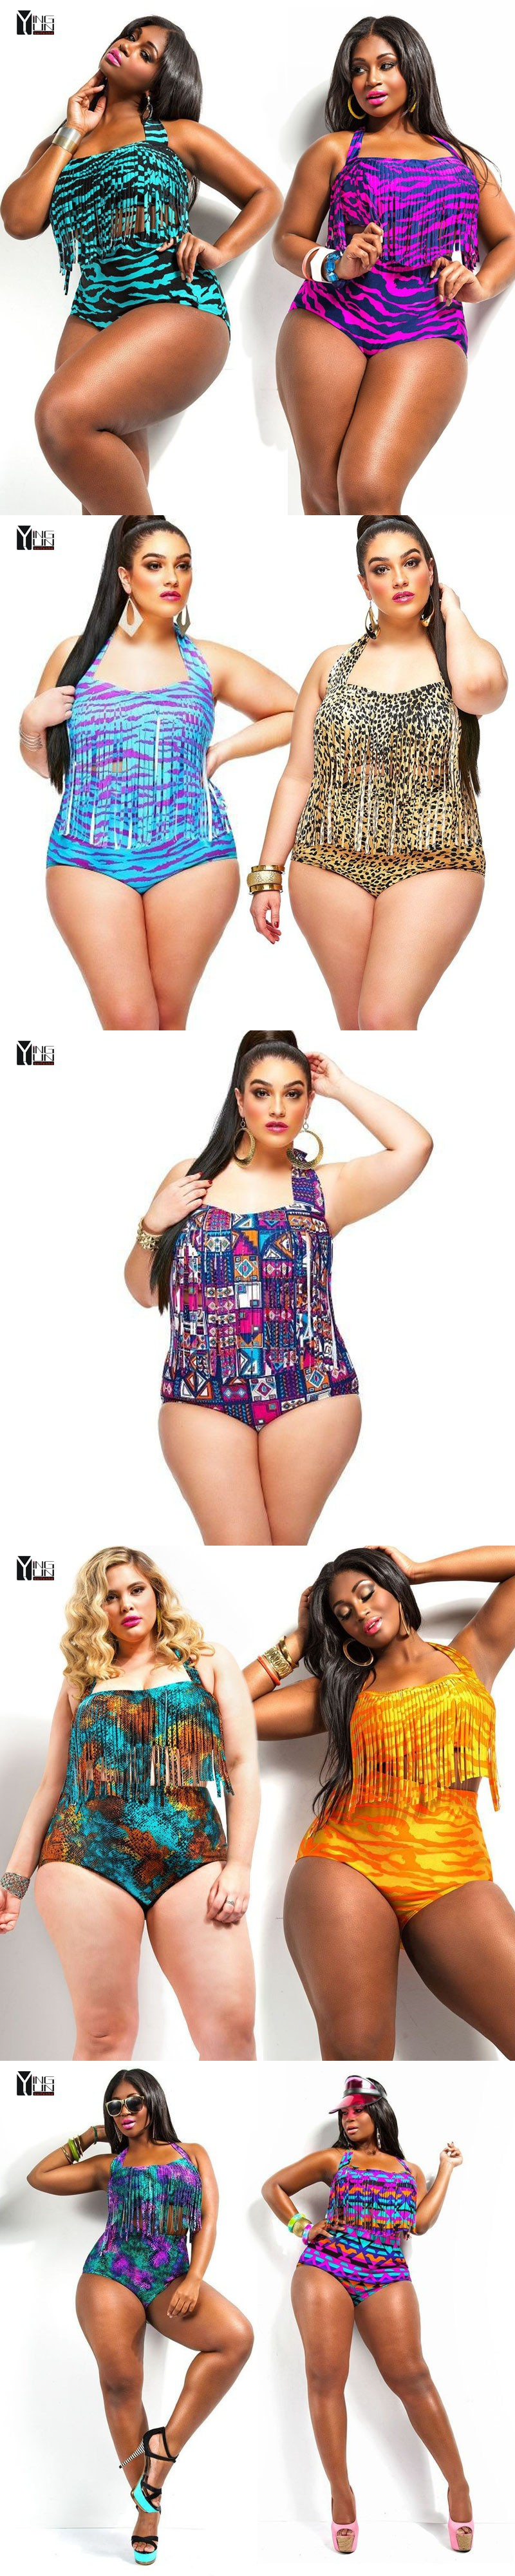 best images about swimsuits on pinterest tankini plus size